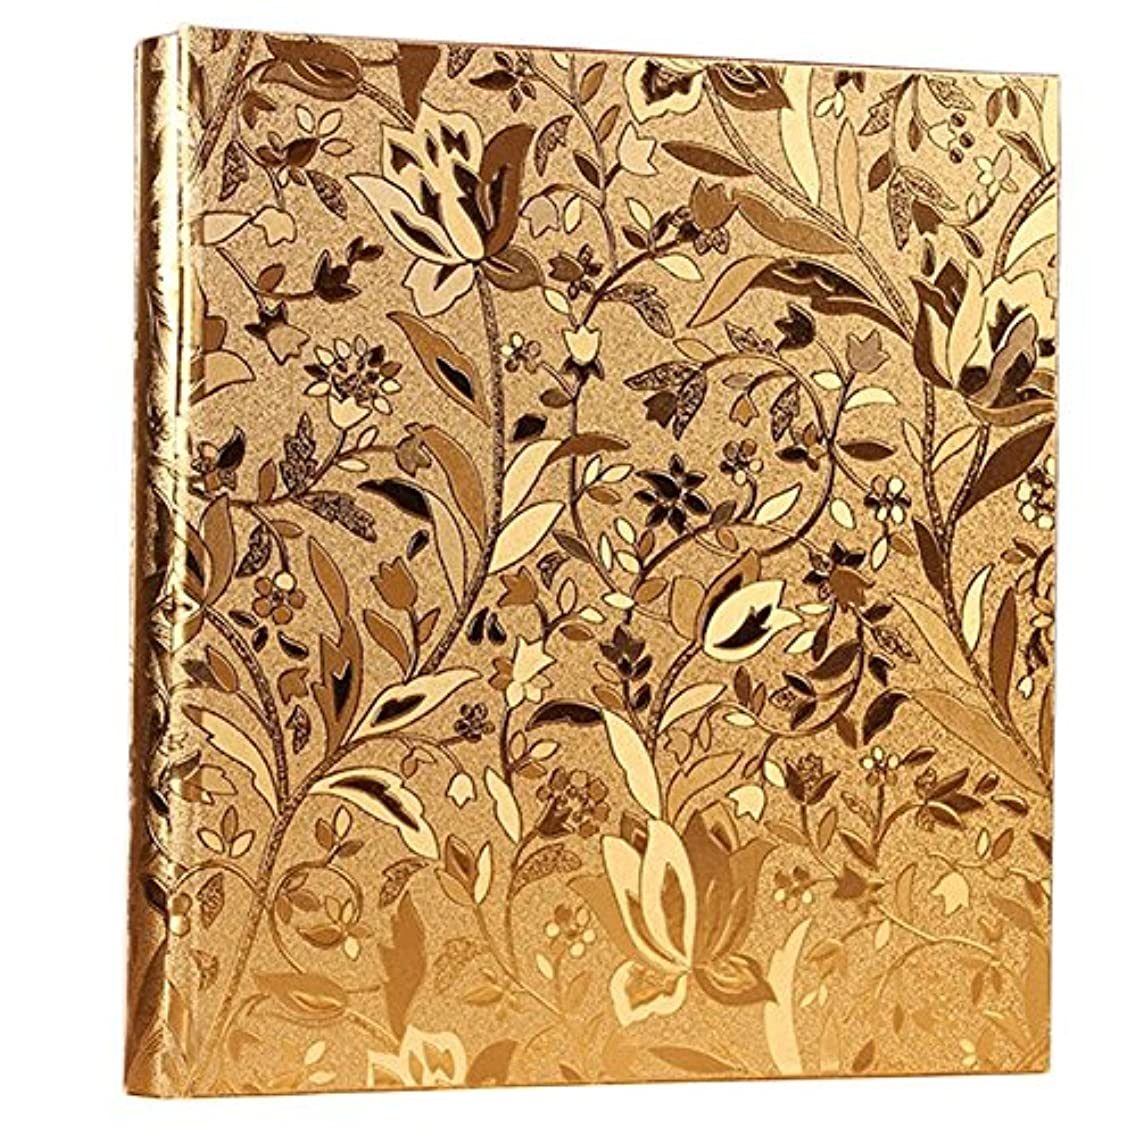 Nizzco Leather Frame Cover Photo Album 600 Pockets Hold 4x6 Photos(Gold)